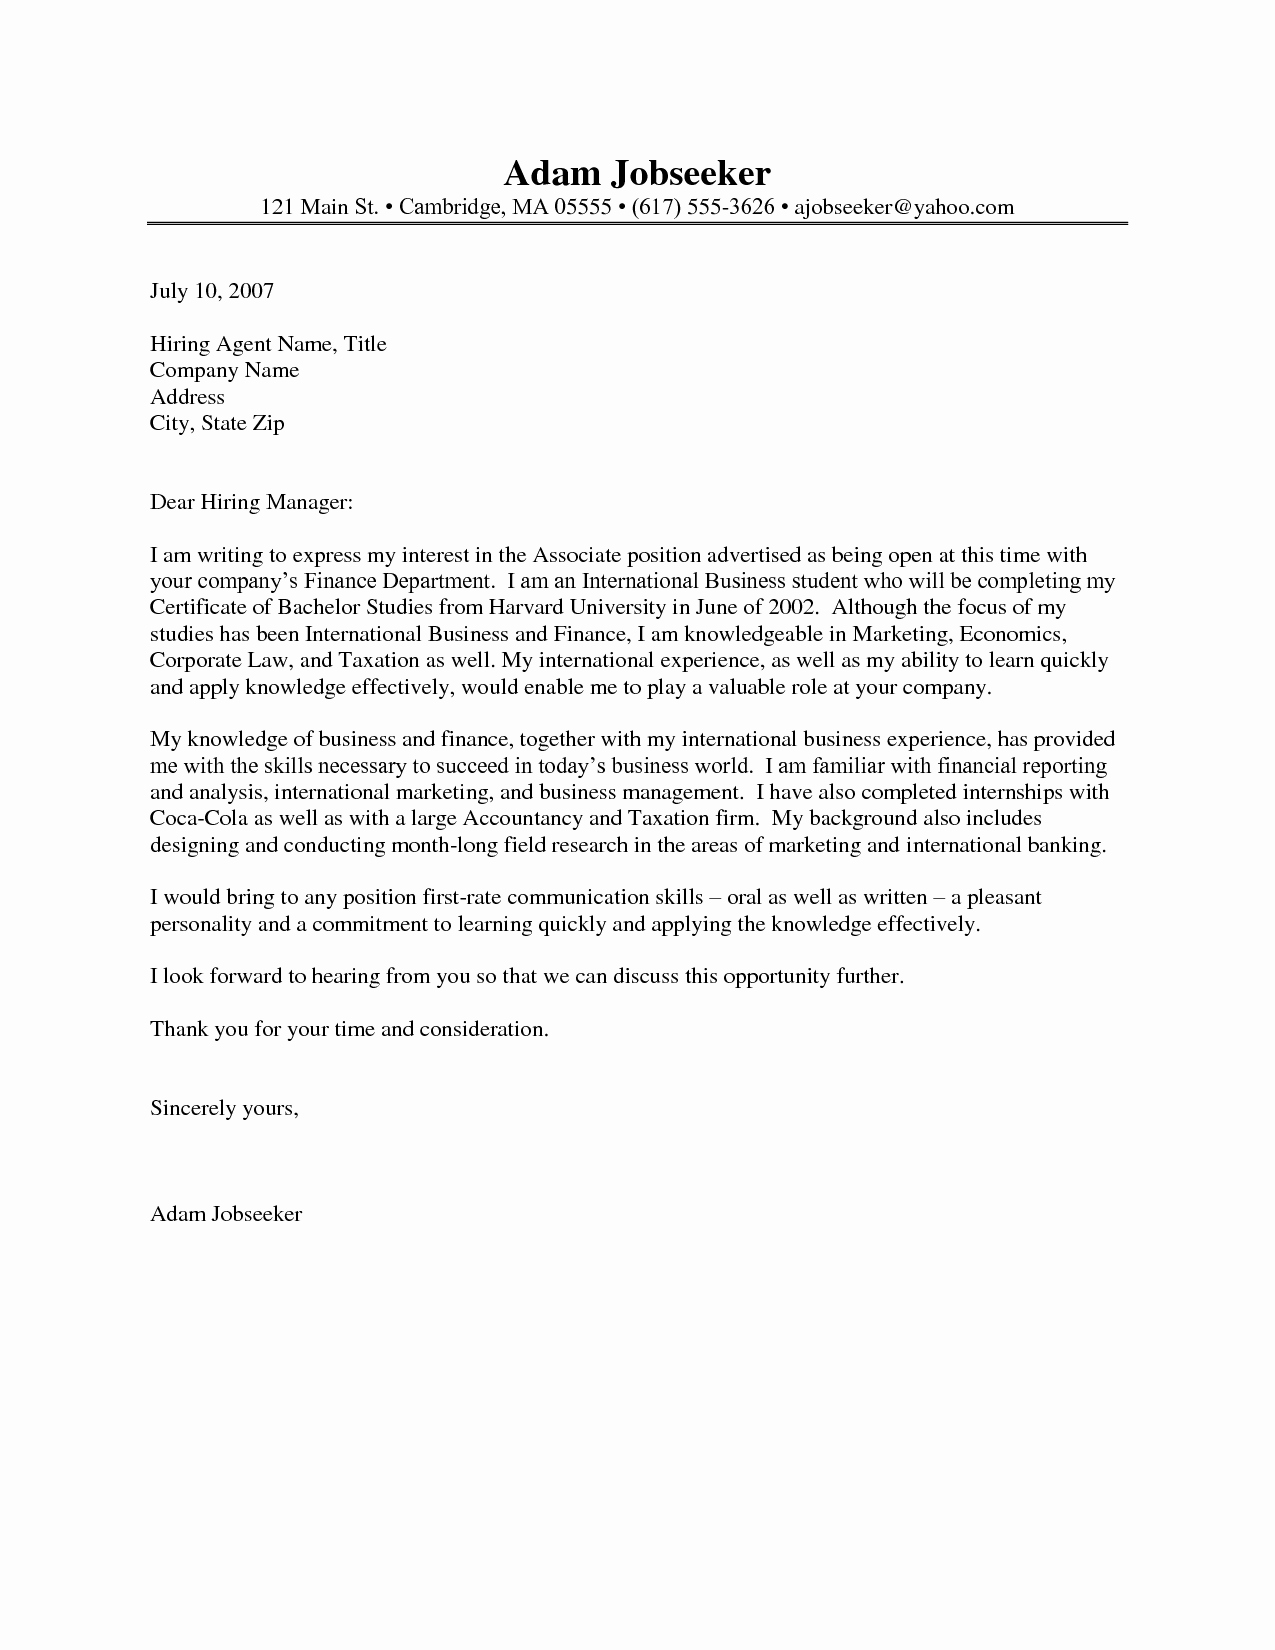 Cover Letter format Internship Luxury Cover Letter for Internship Resume Cover Letter Internship